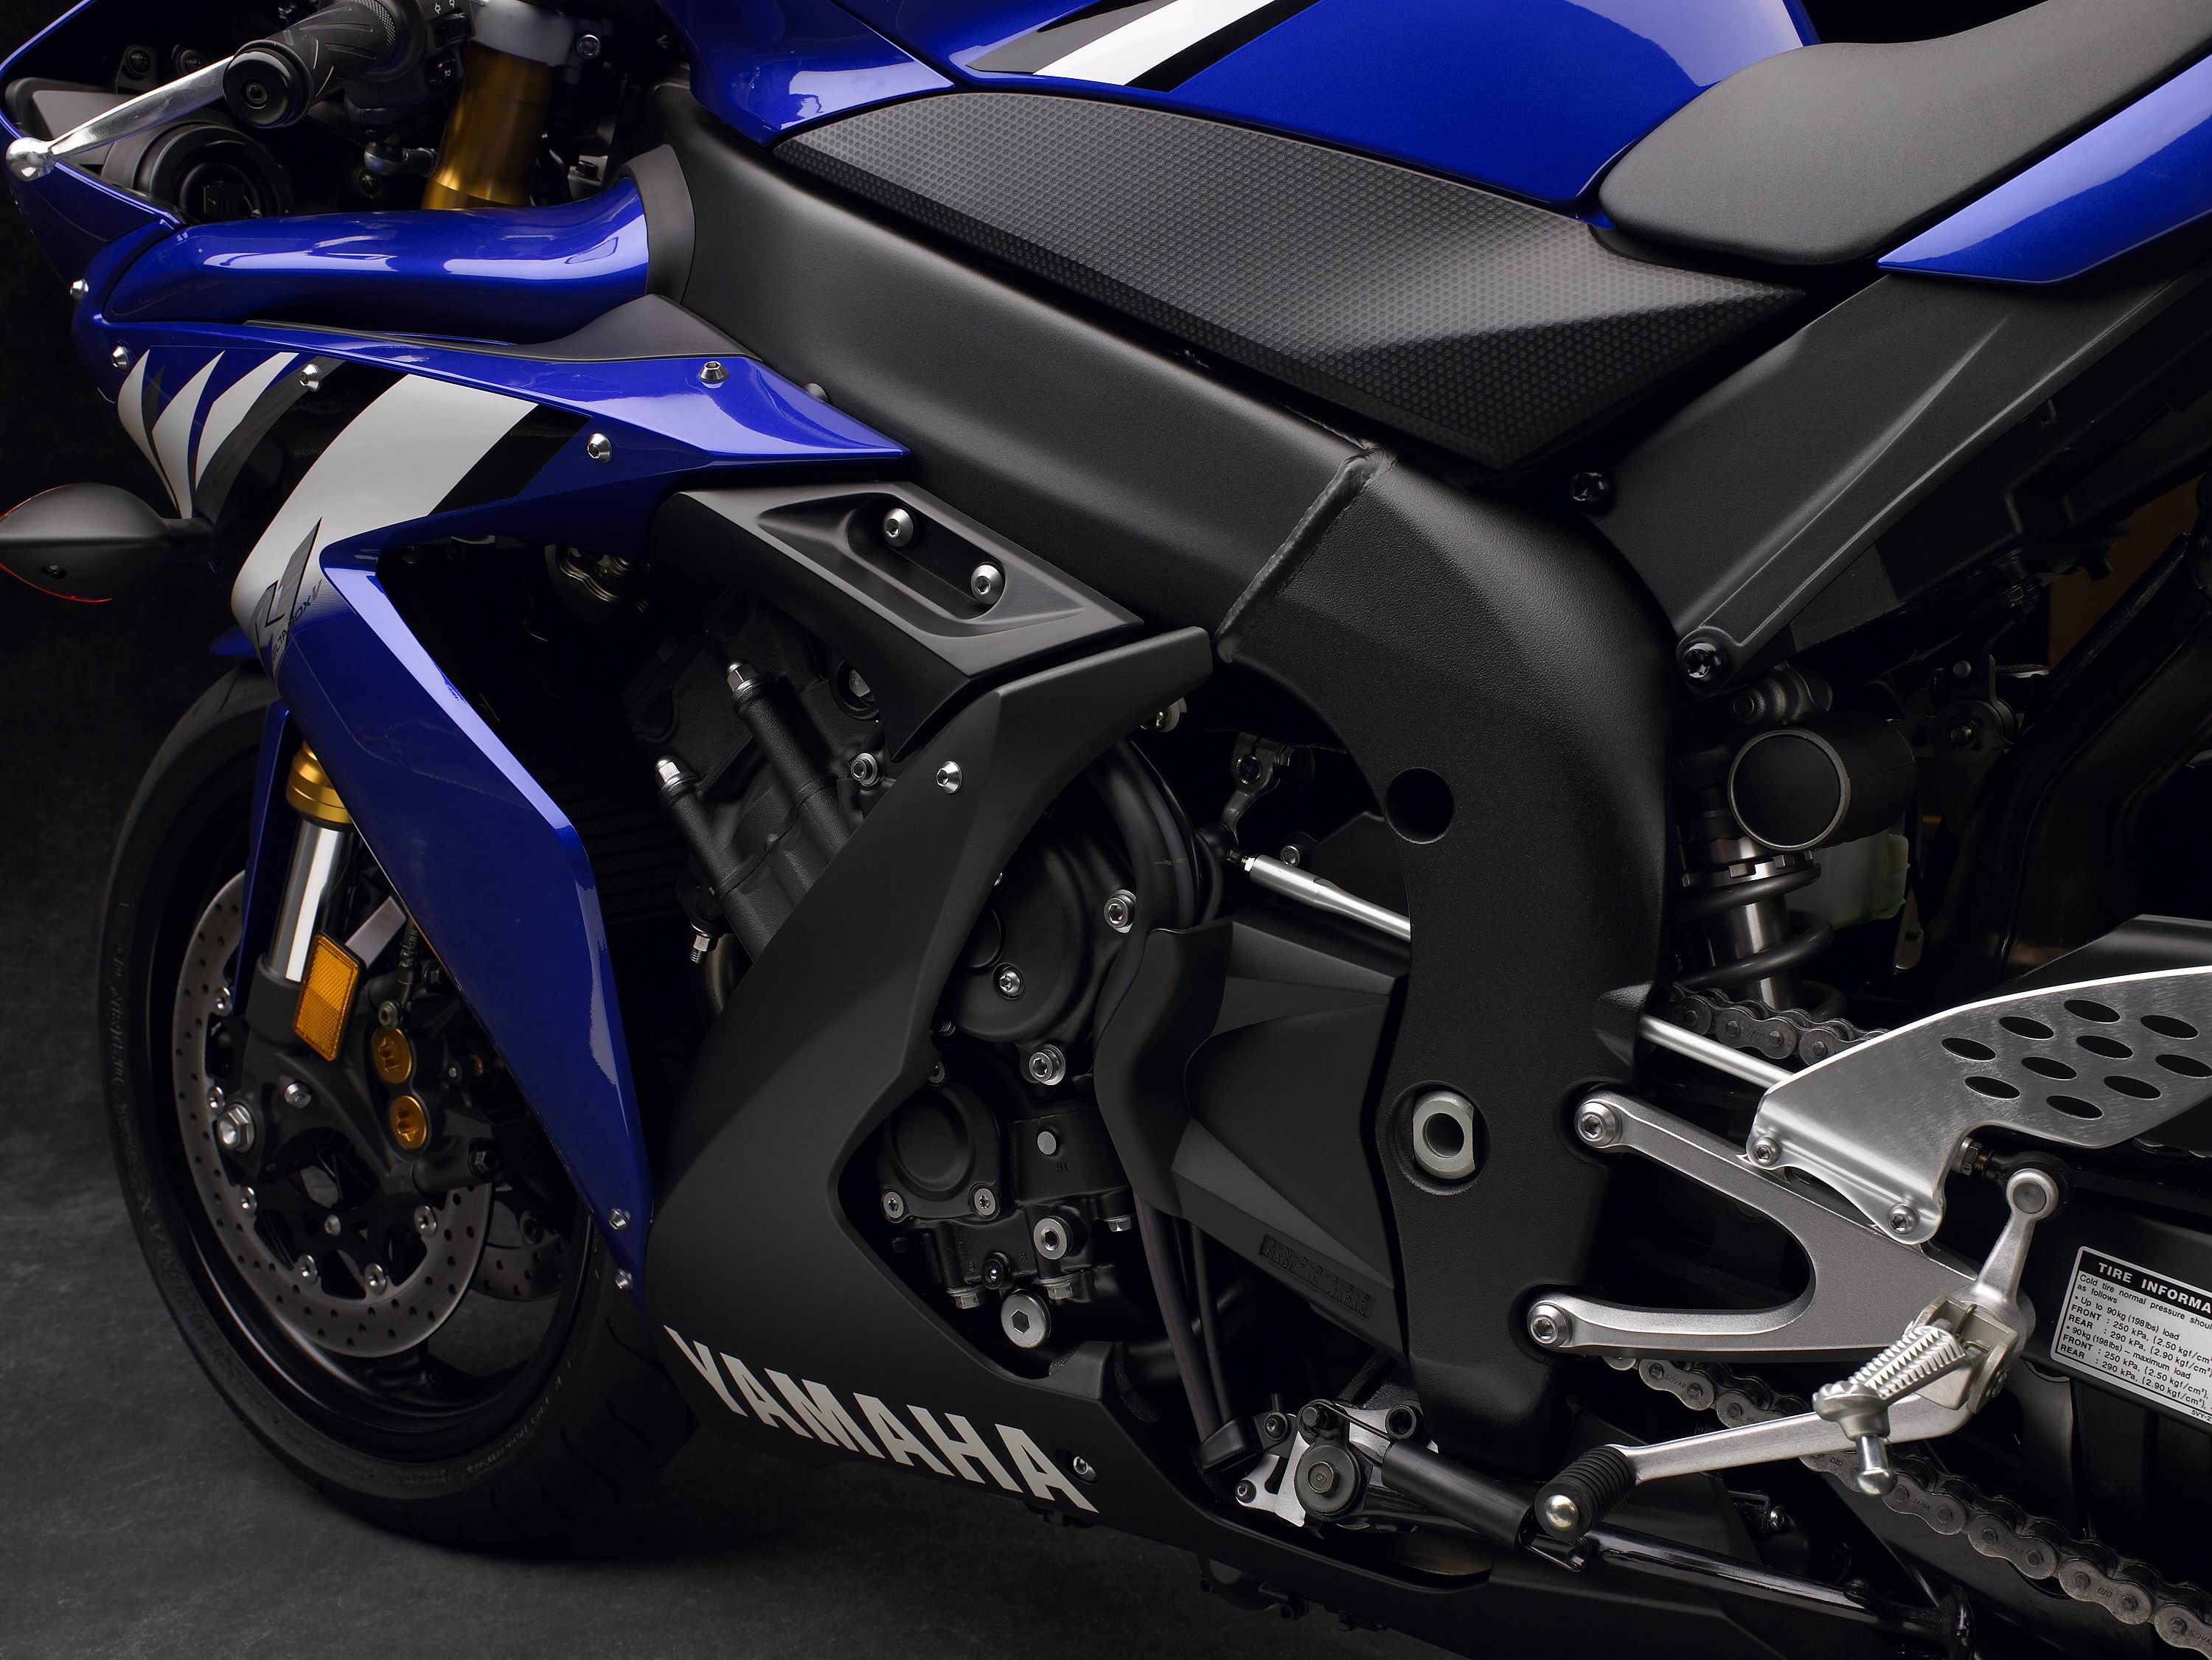 2006 yamaha yzf r1 review top speed for 2006 yamaha r1